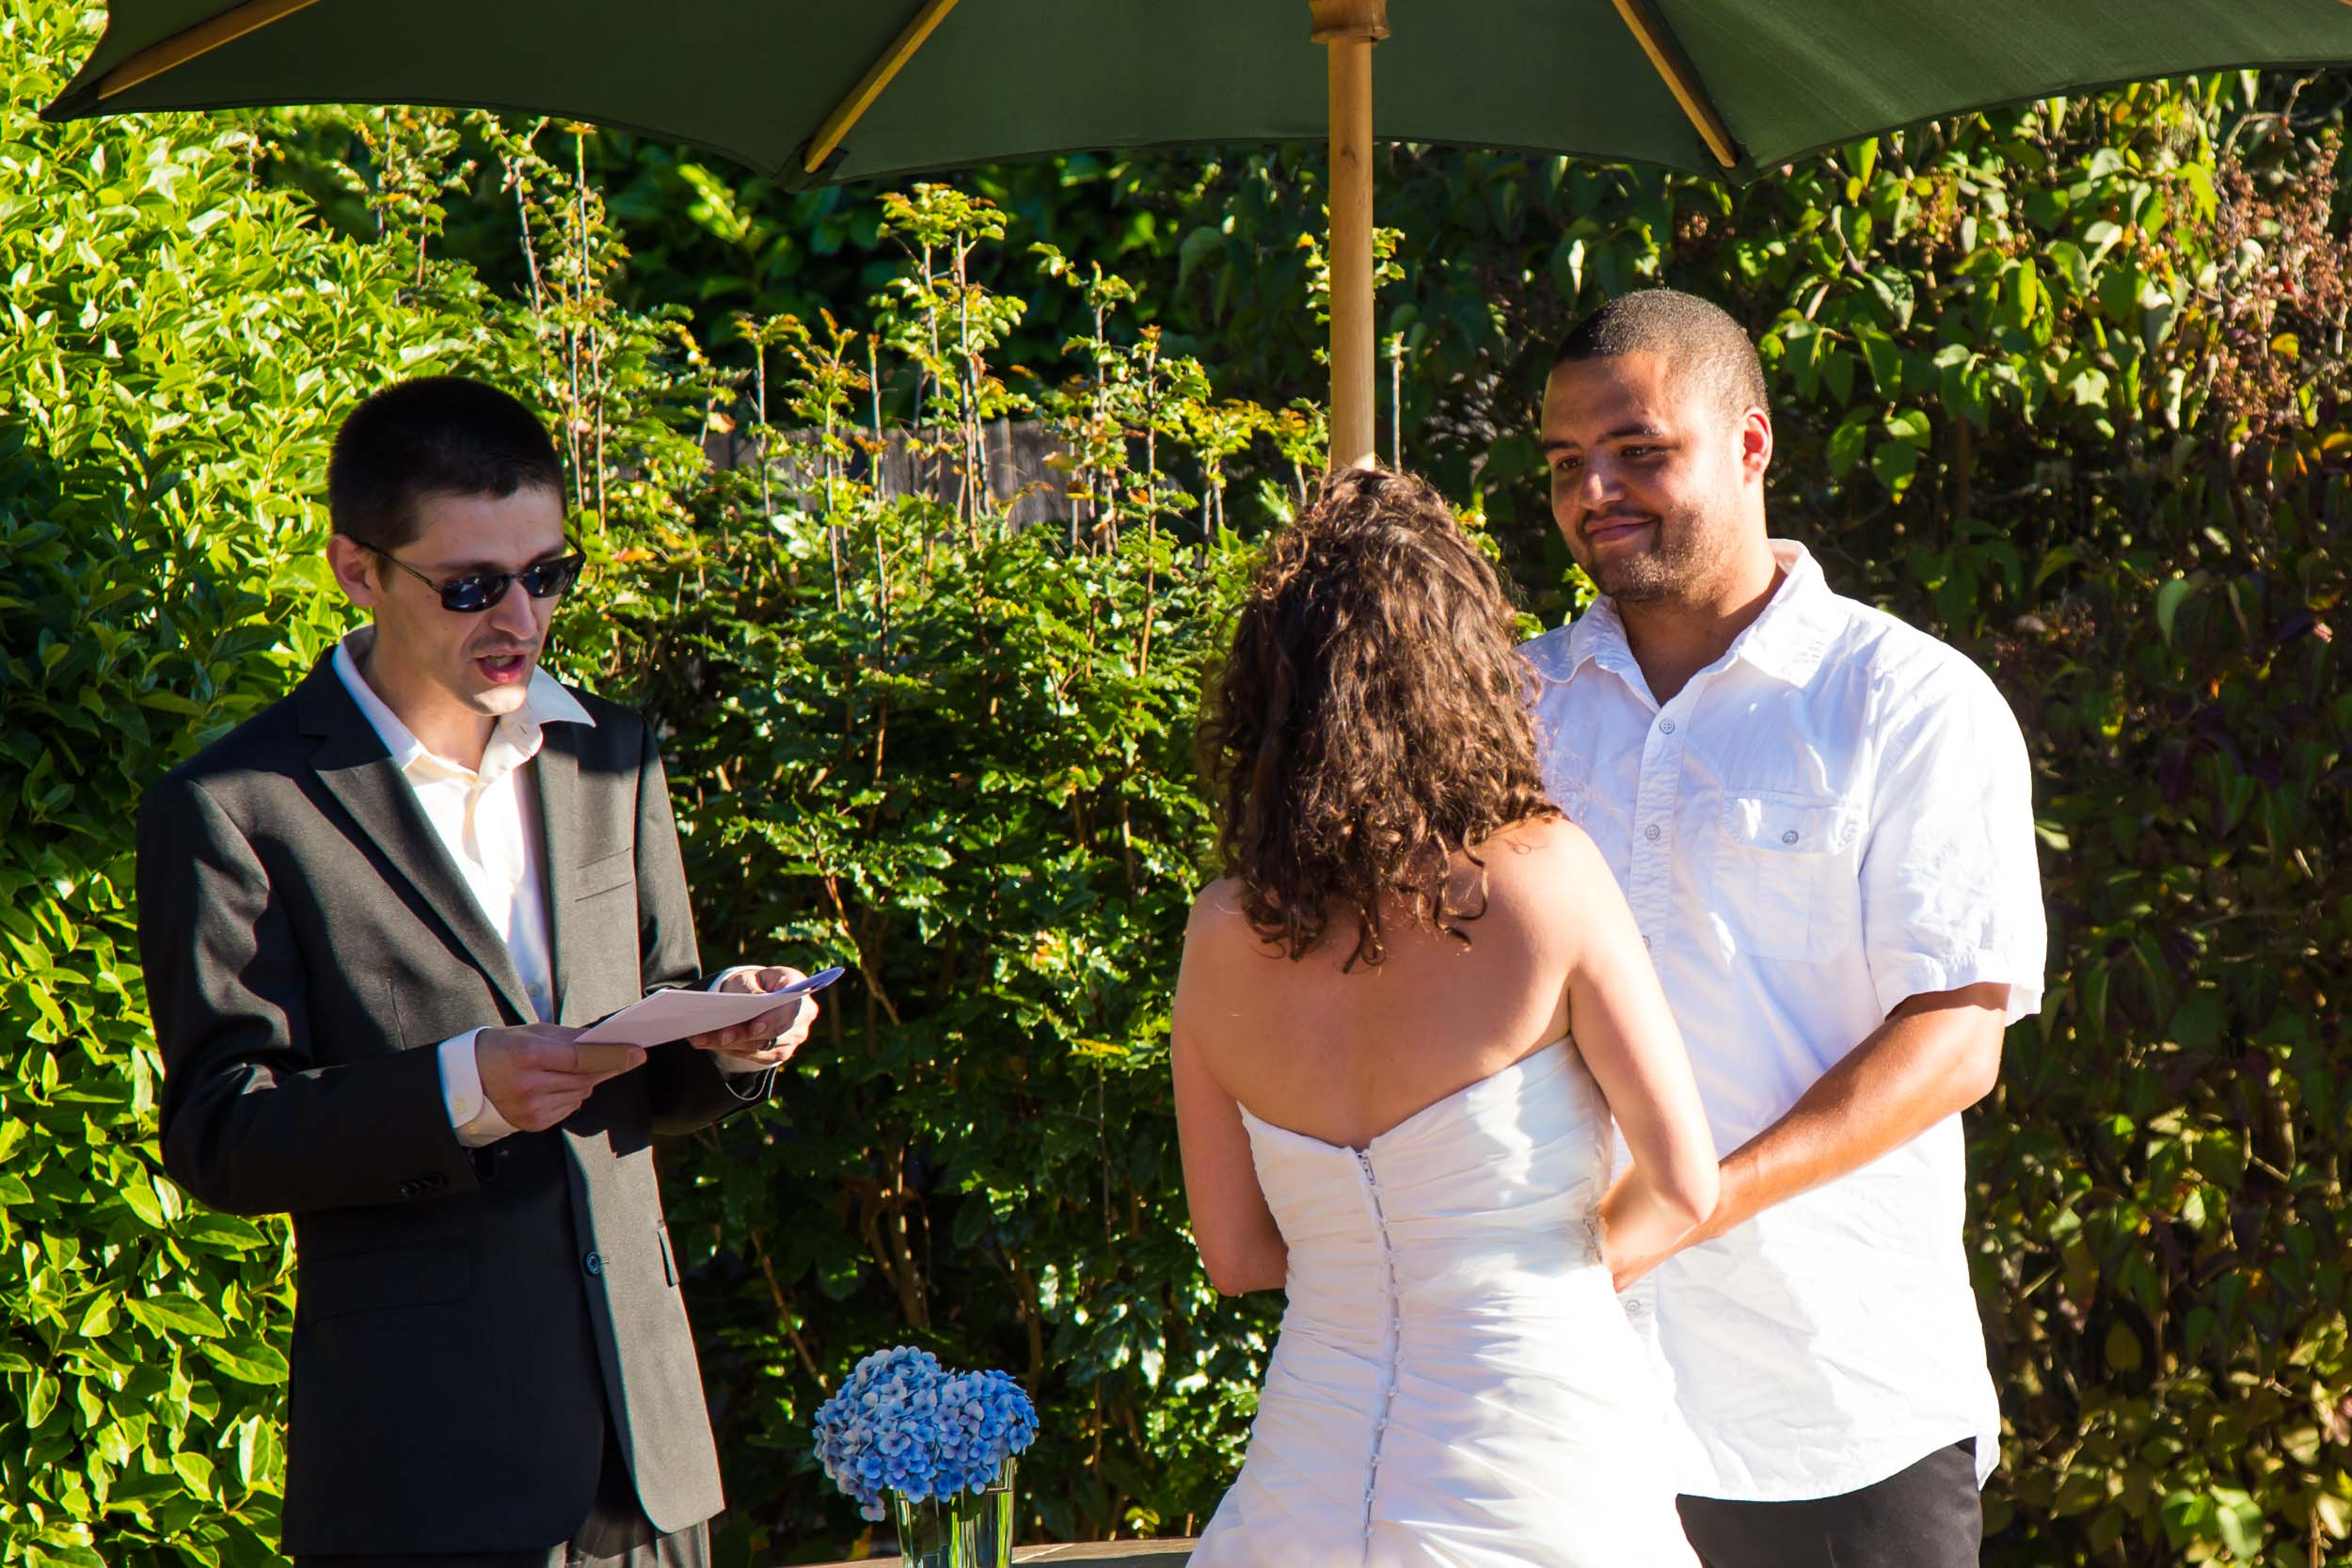 Seattle Wedding Photographer | By G. Lin Photography | Officiant reading to bride and groom